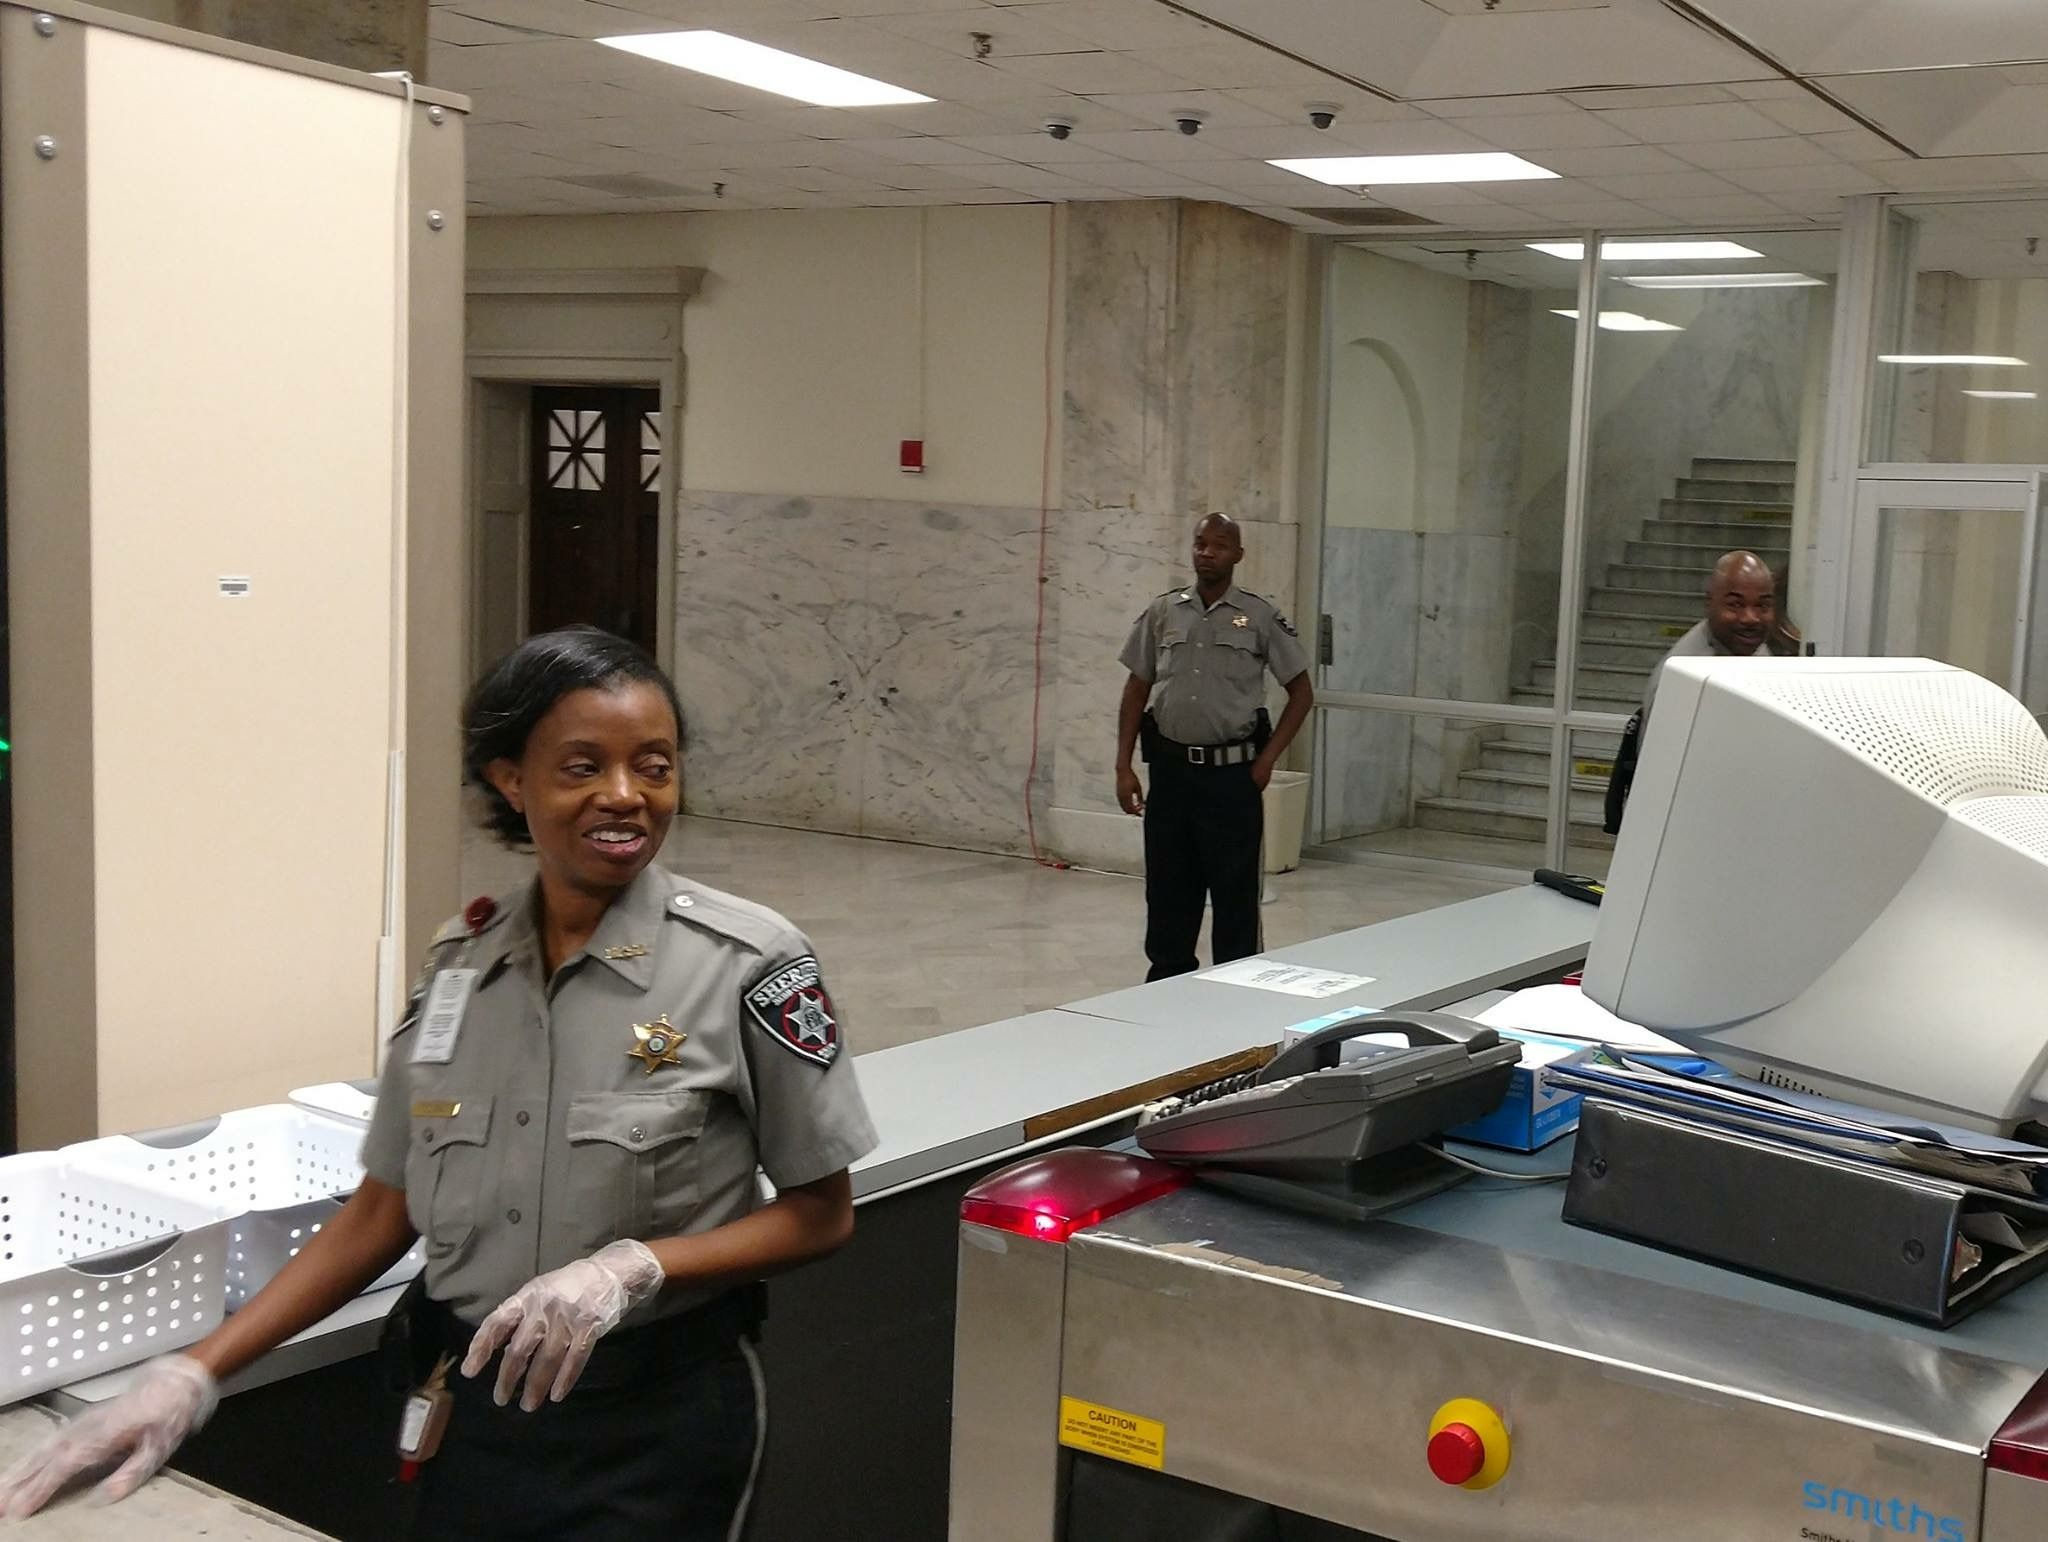 Bibb county sheriffs office court services deputies are